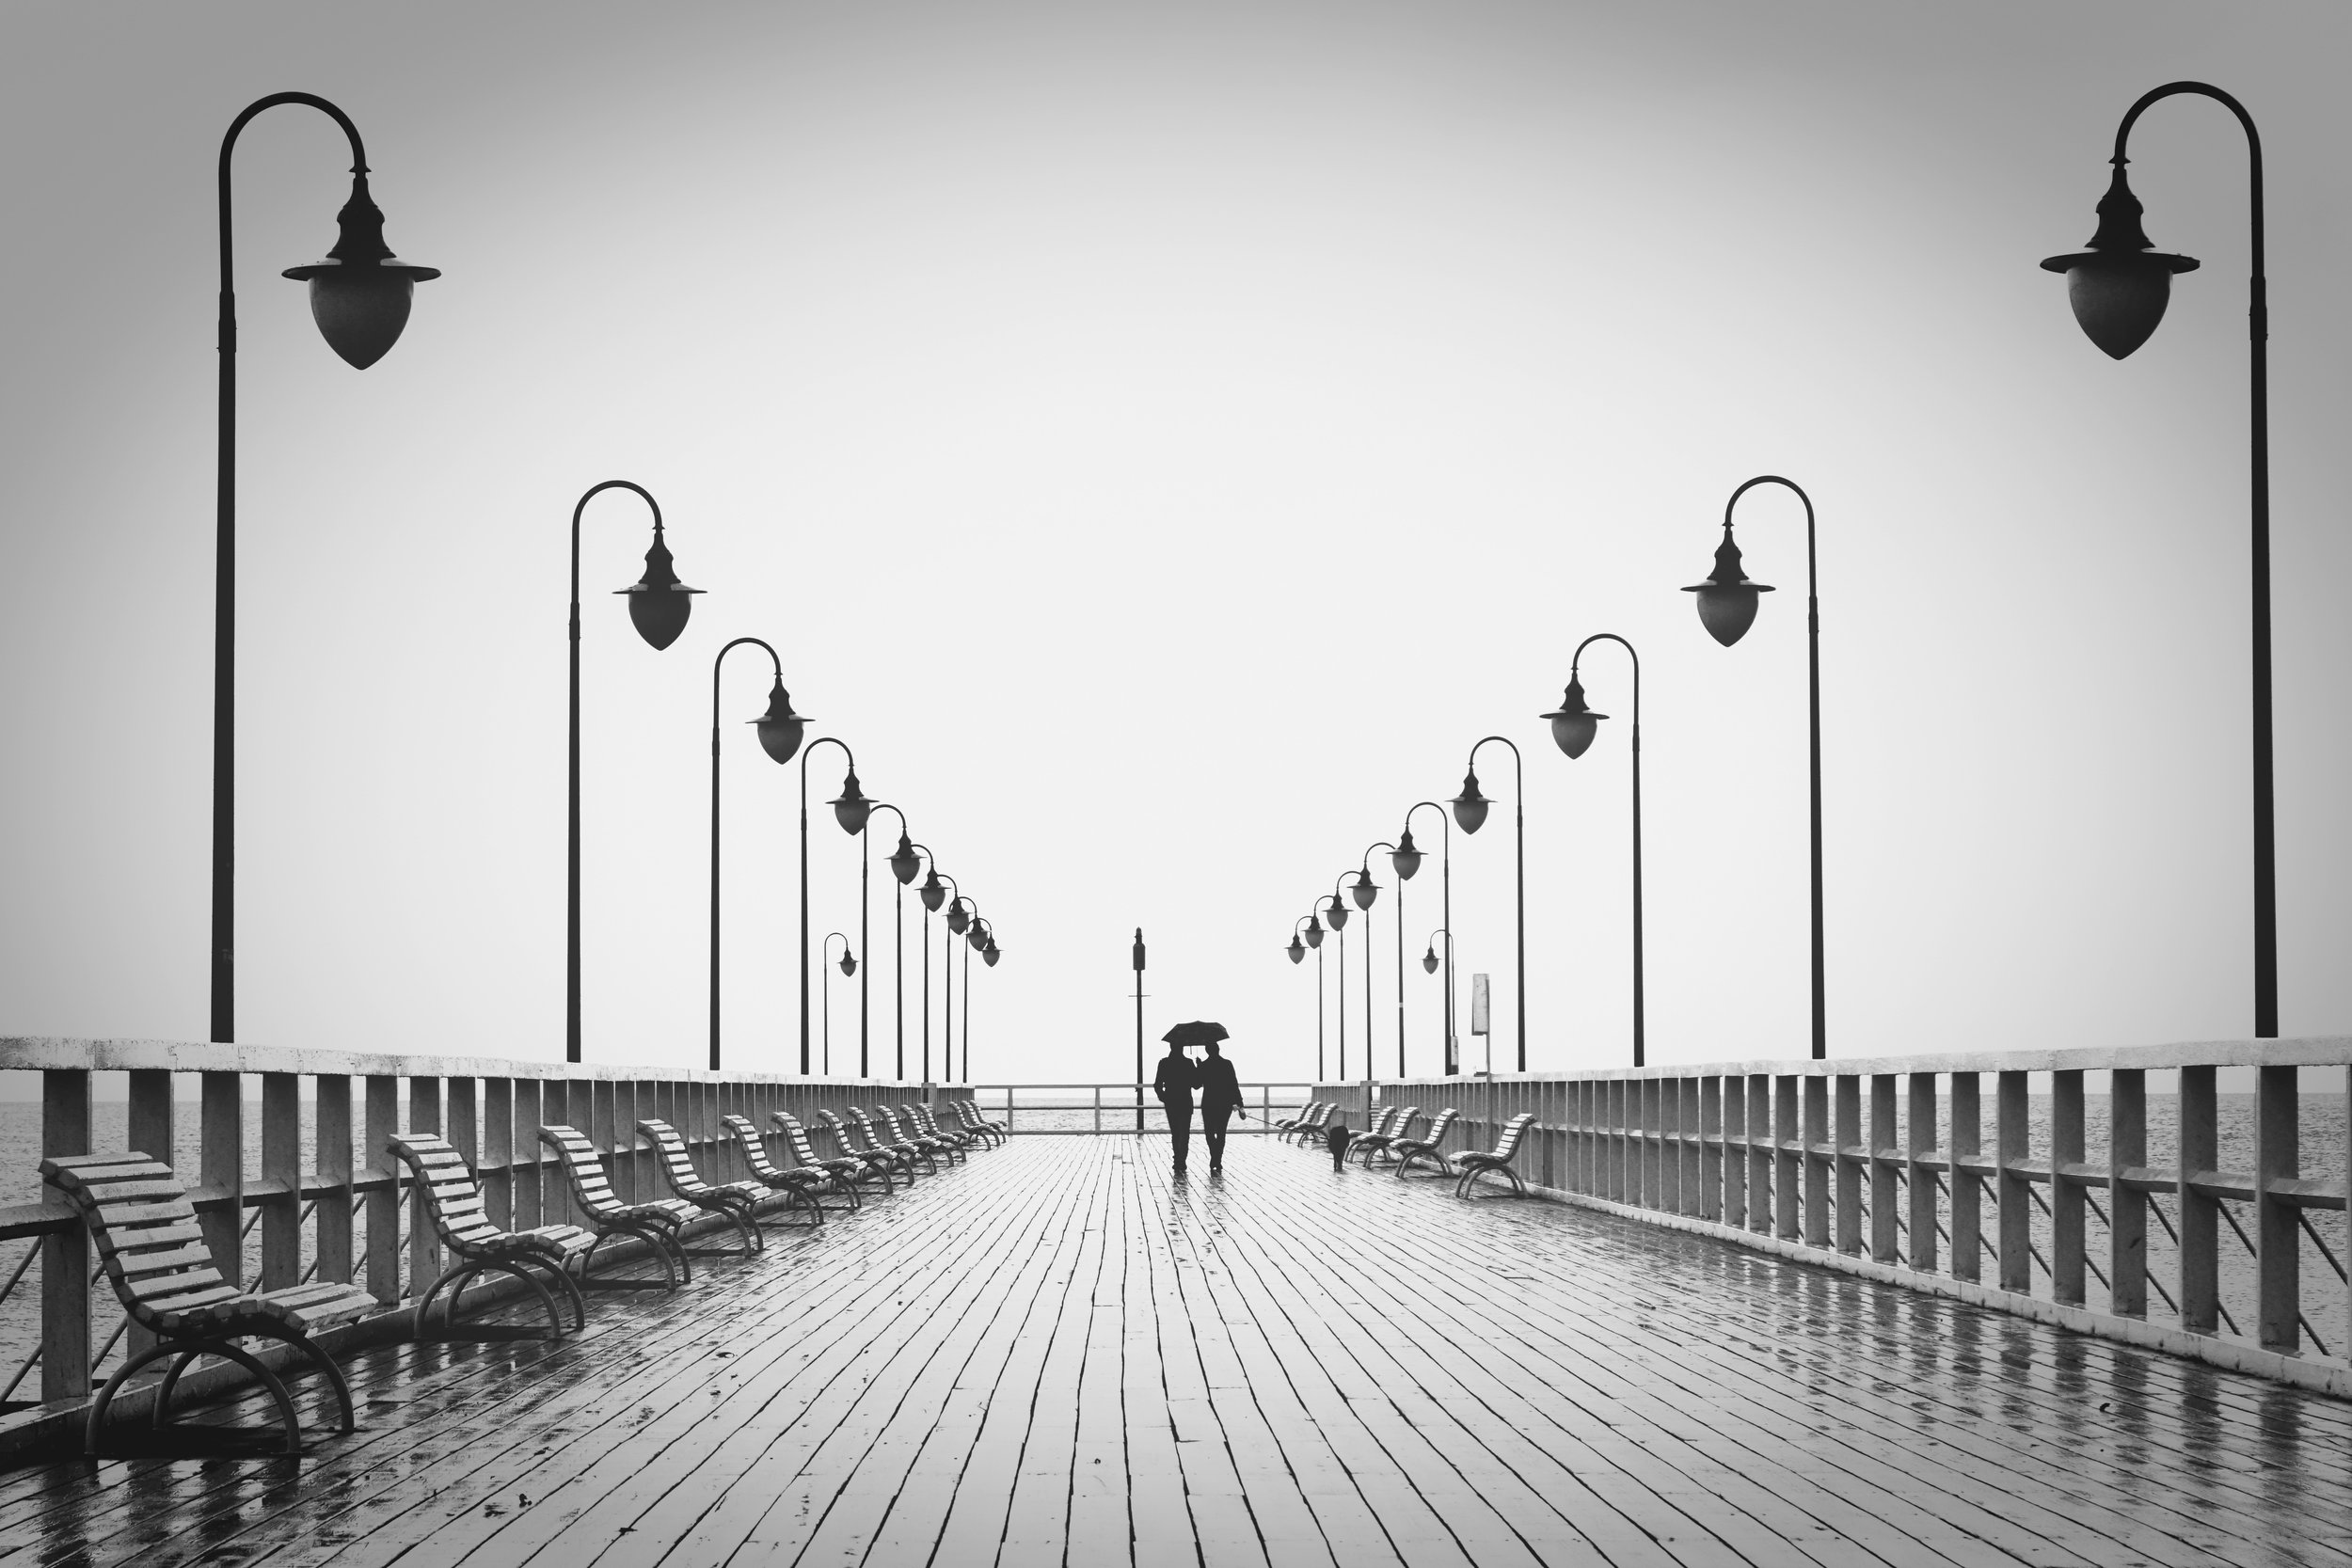 affection-benches-black-and-white-220836.jpg